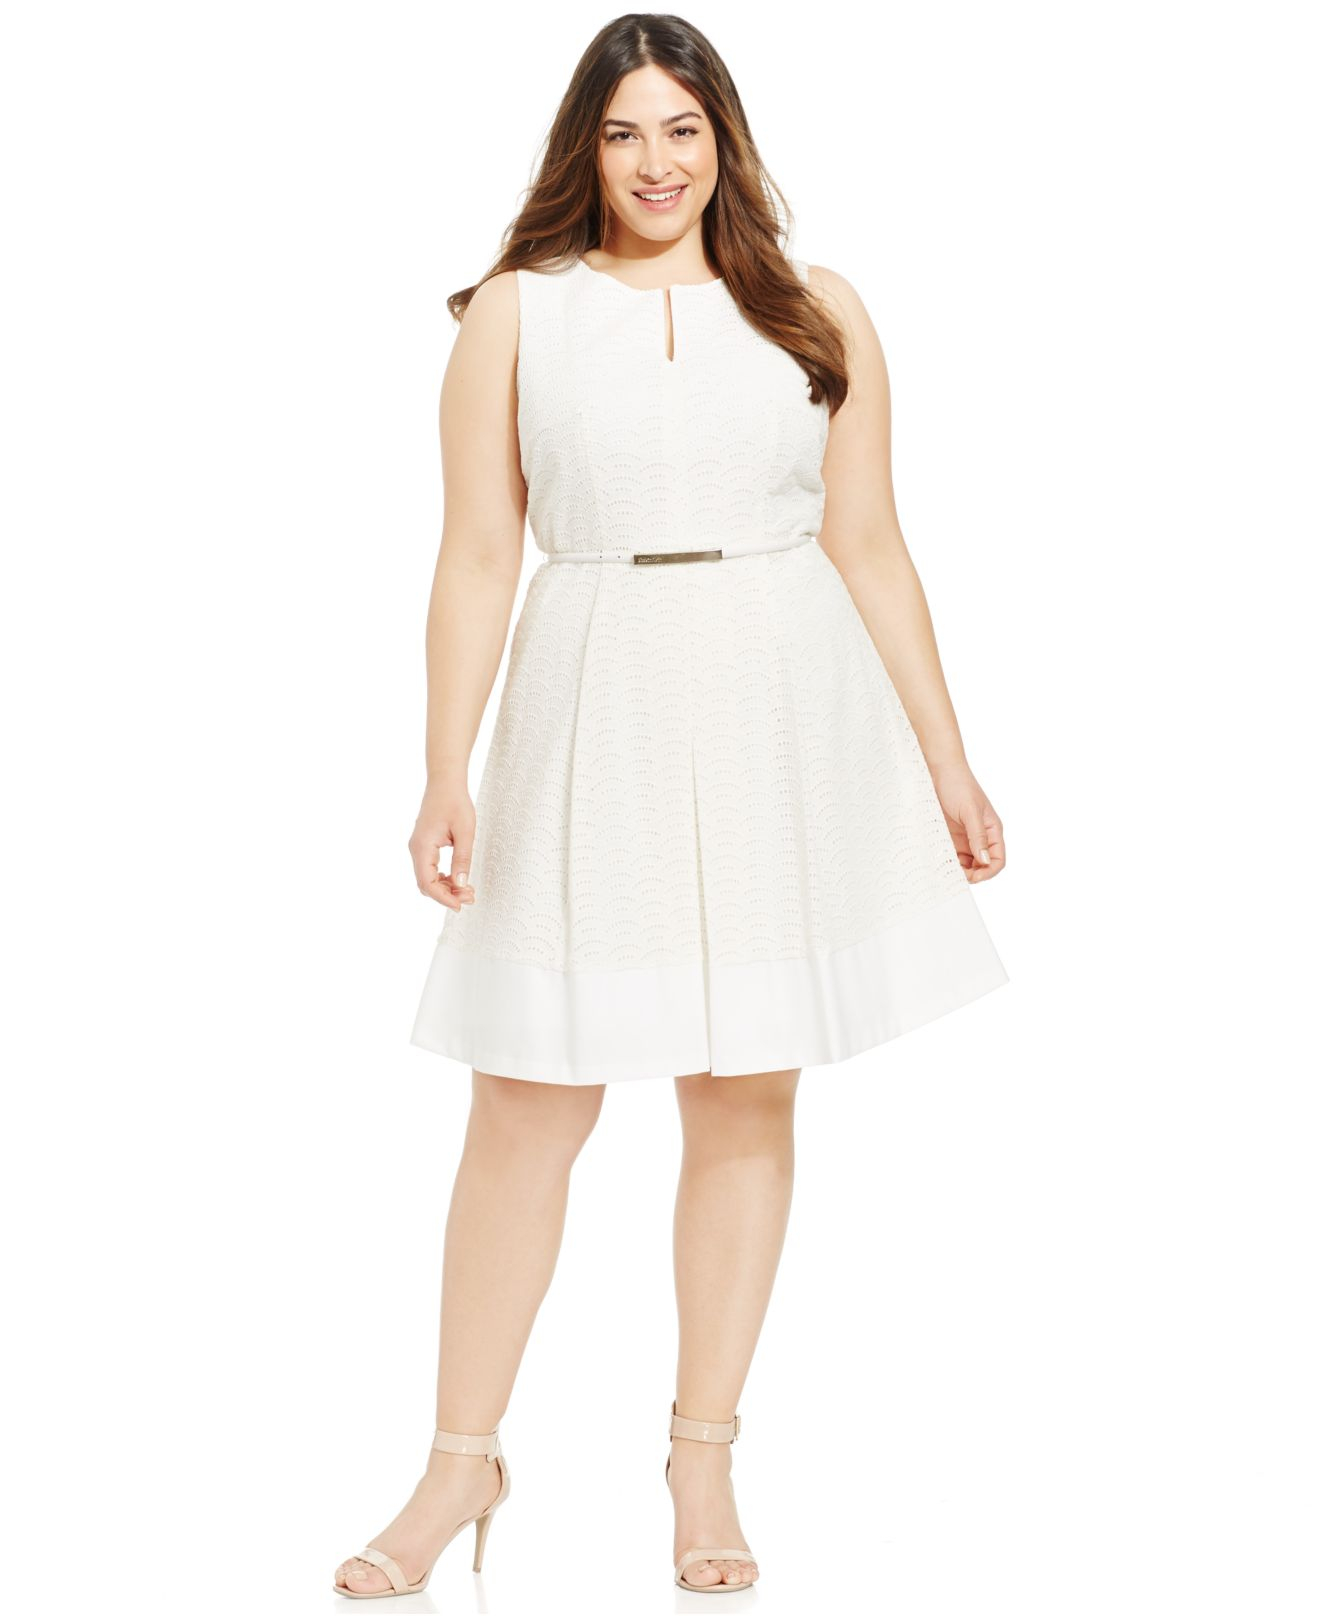 7ef2f8d53f Calvin Klein Plus Size Eyelet A-Line Belted Dress in White - Lyst